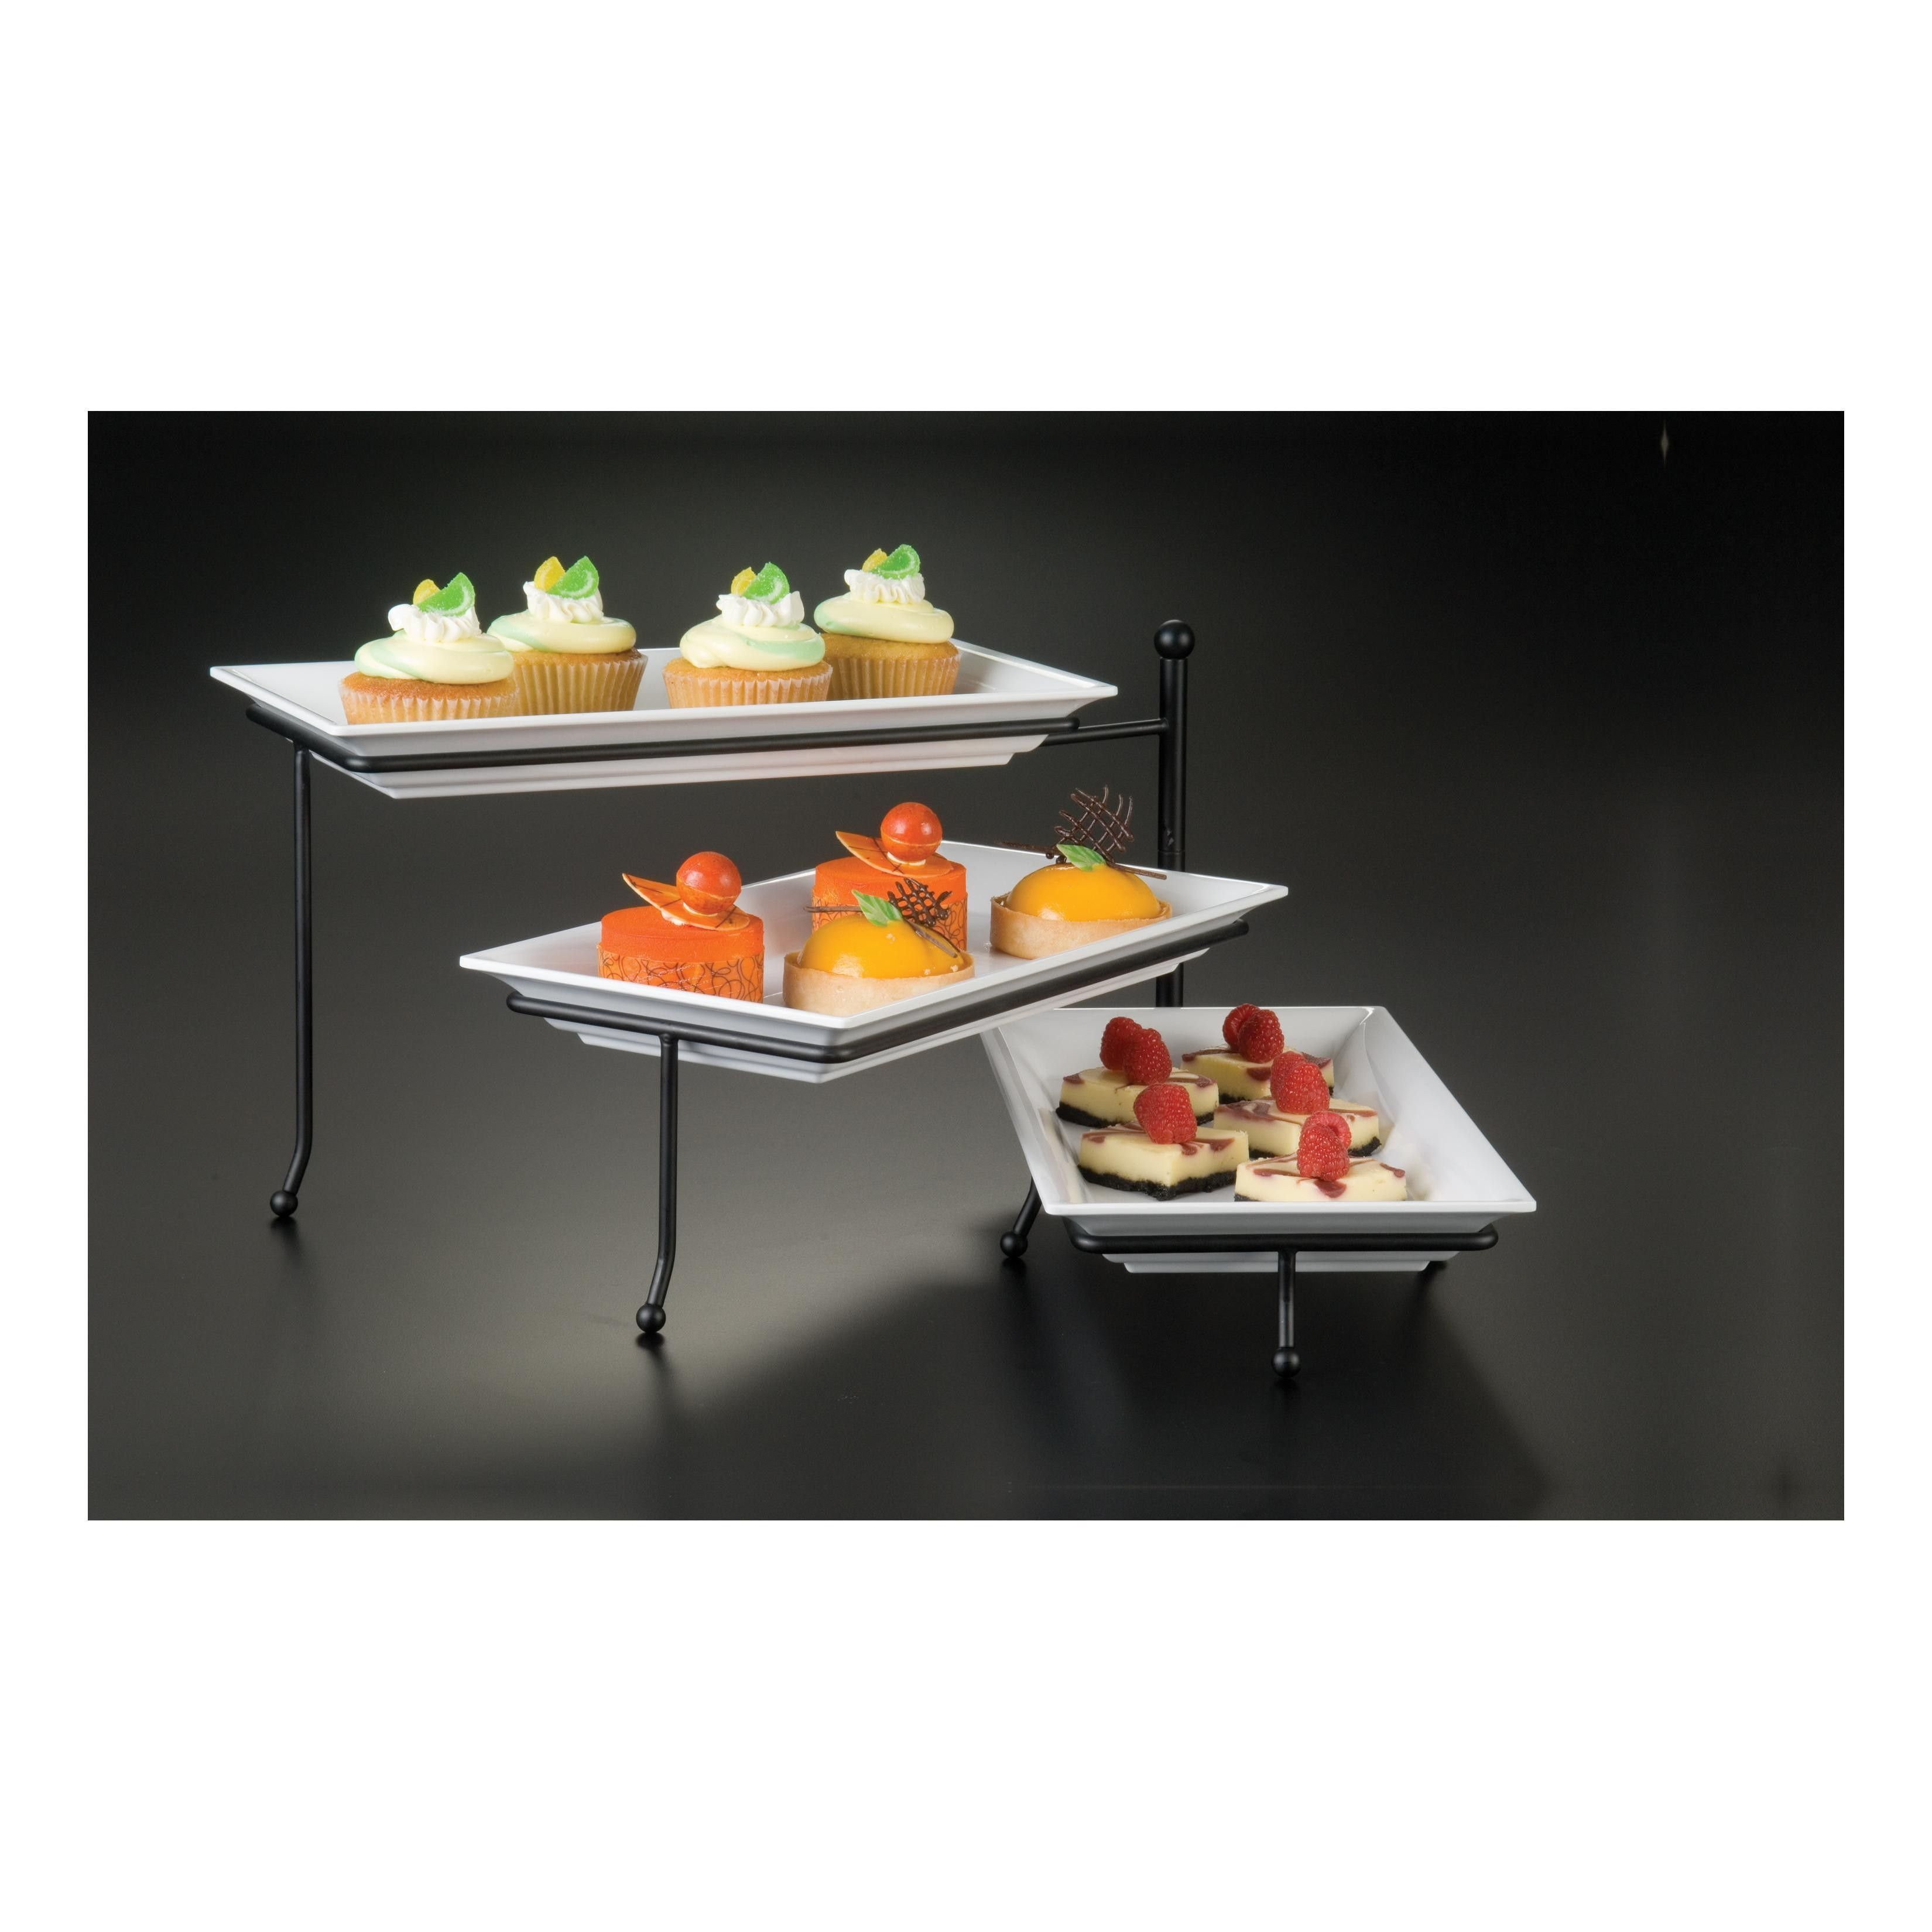 3 Tier Steel Display Stand W Platters Upscale Your Catering Or Buffet Service With The 3 Tier Wrought Iron Foldable American Metalcraft Wrought Buffet Stand